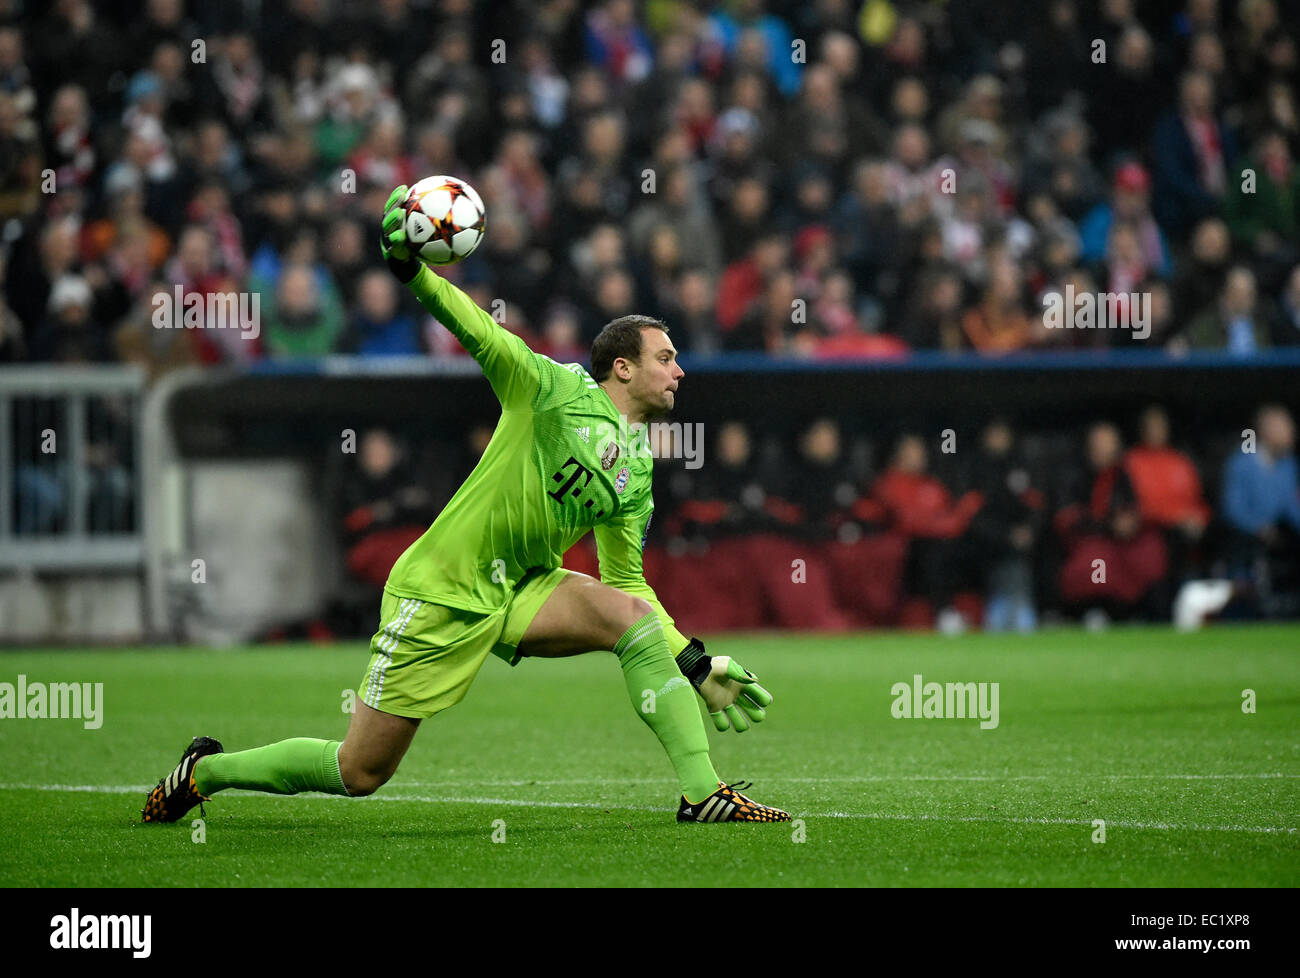 Goalkeeper Manuel Neuer FC Bayern Munich throwing the ball